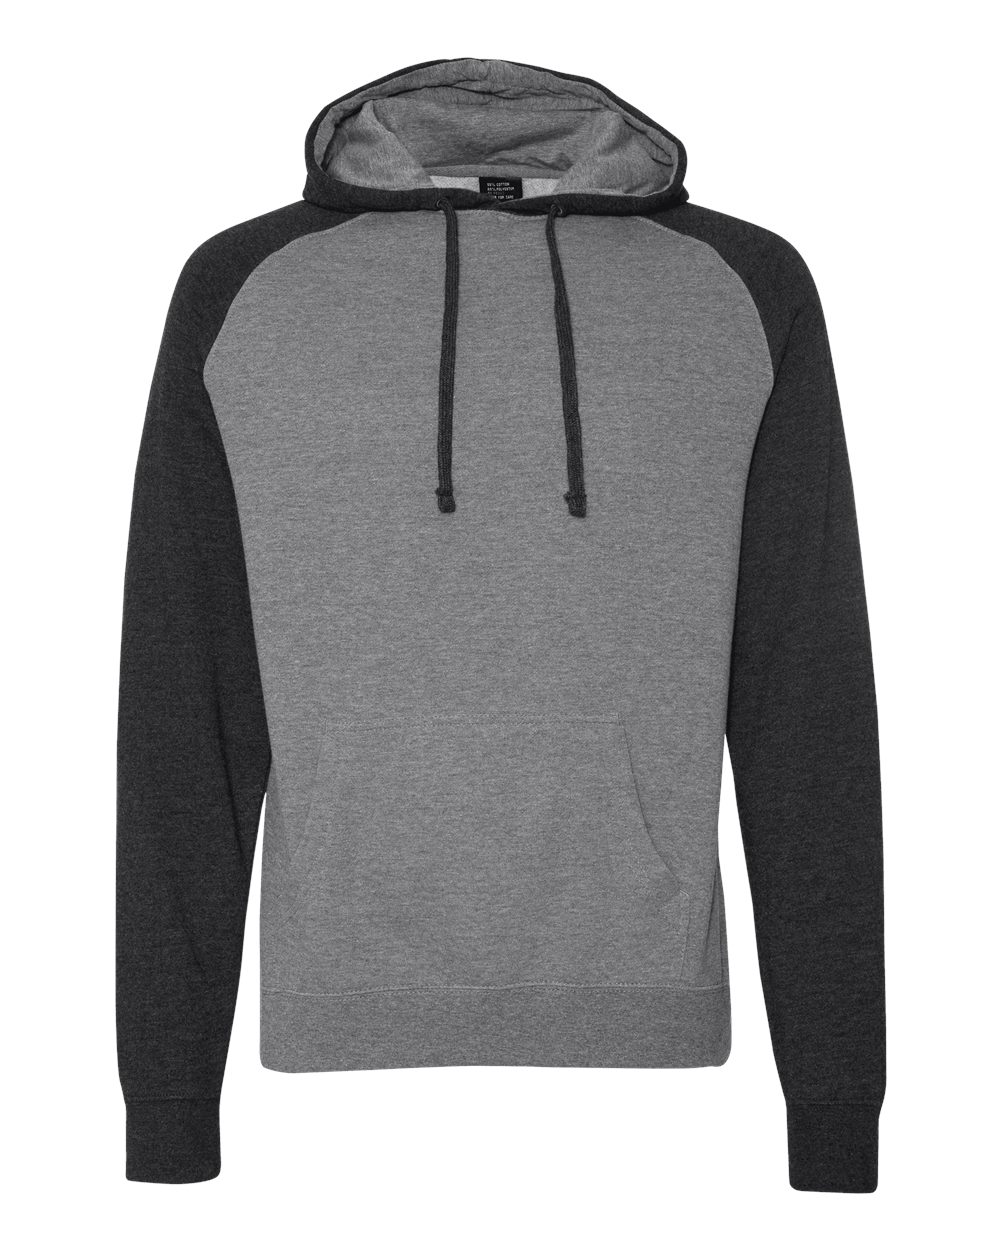 Independent-Trading-Co-Mens-Raglan-Hooded-Pullover-Sweatshirt-IND40RP-up-to-3XL miniature 24